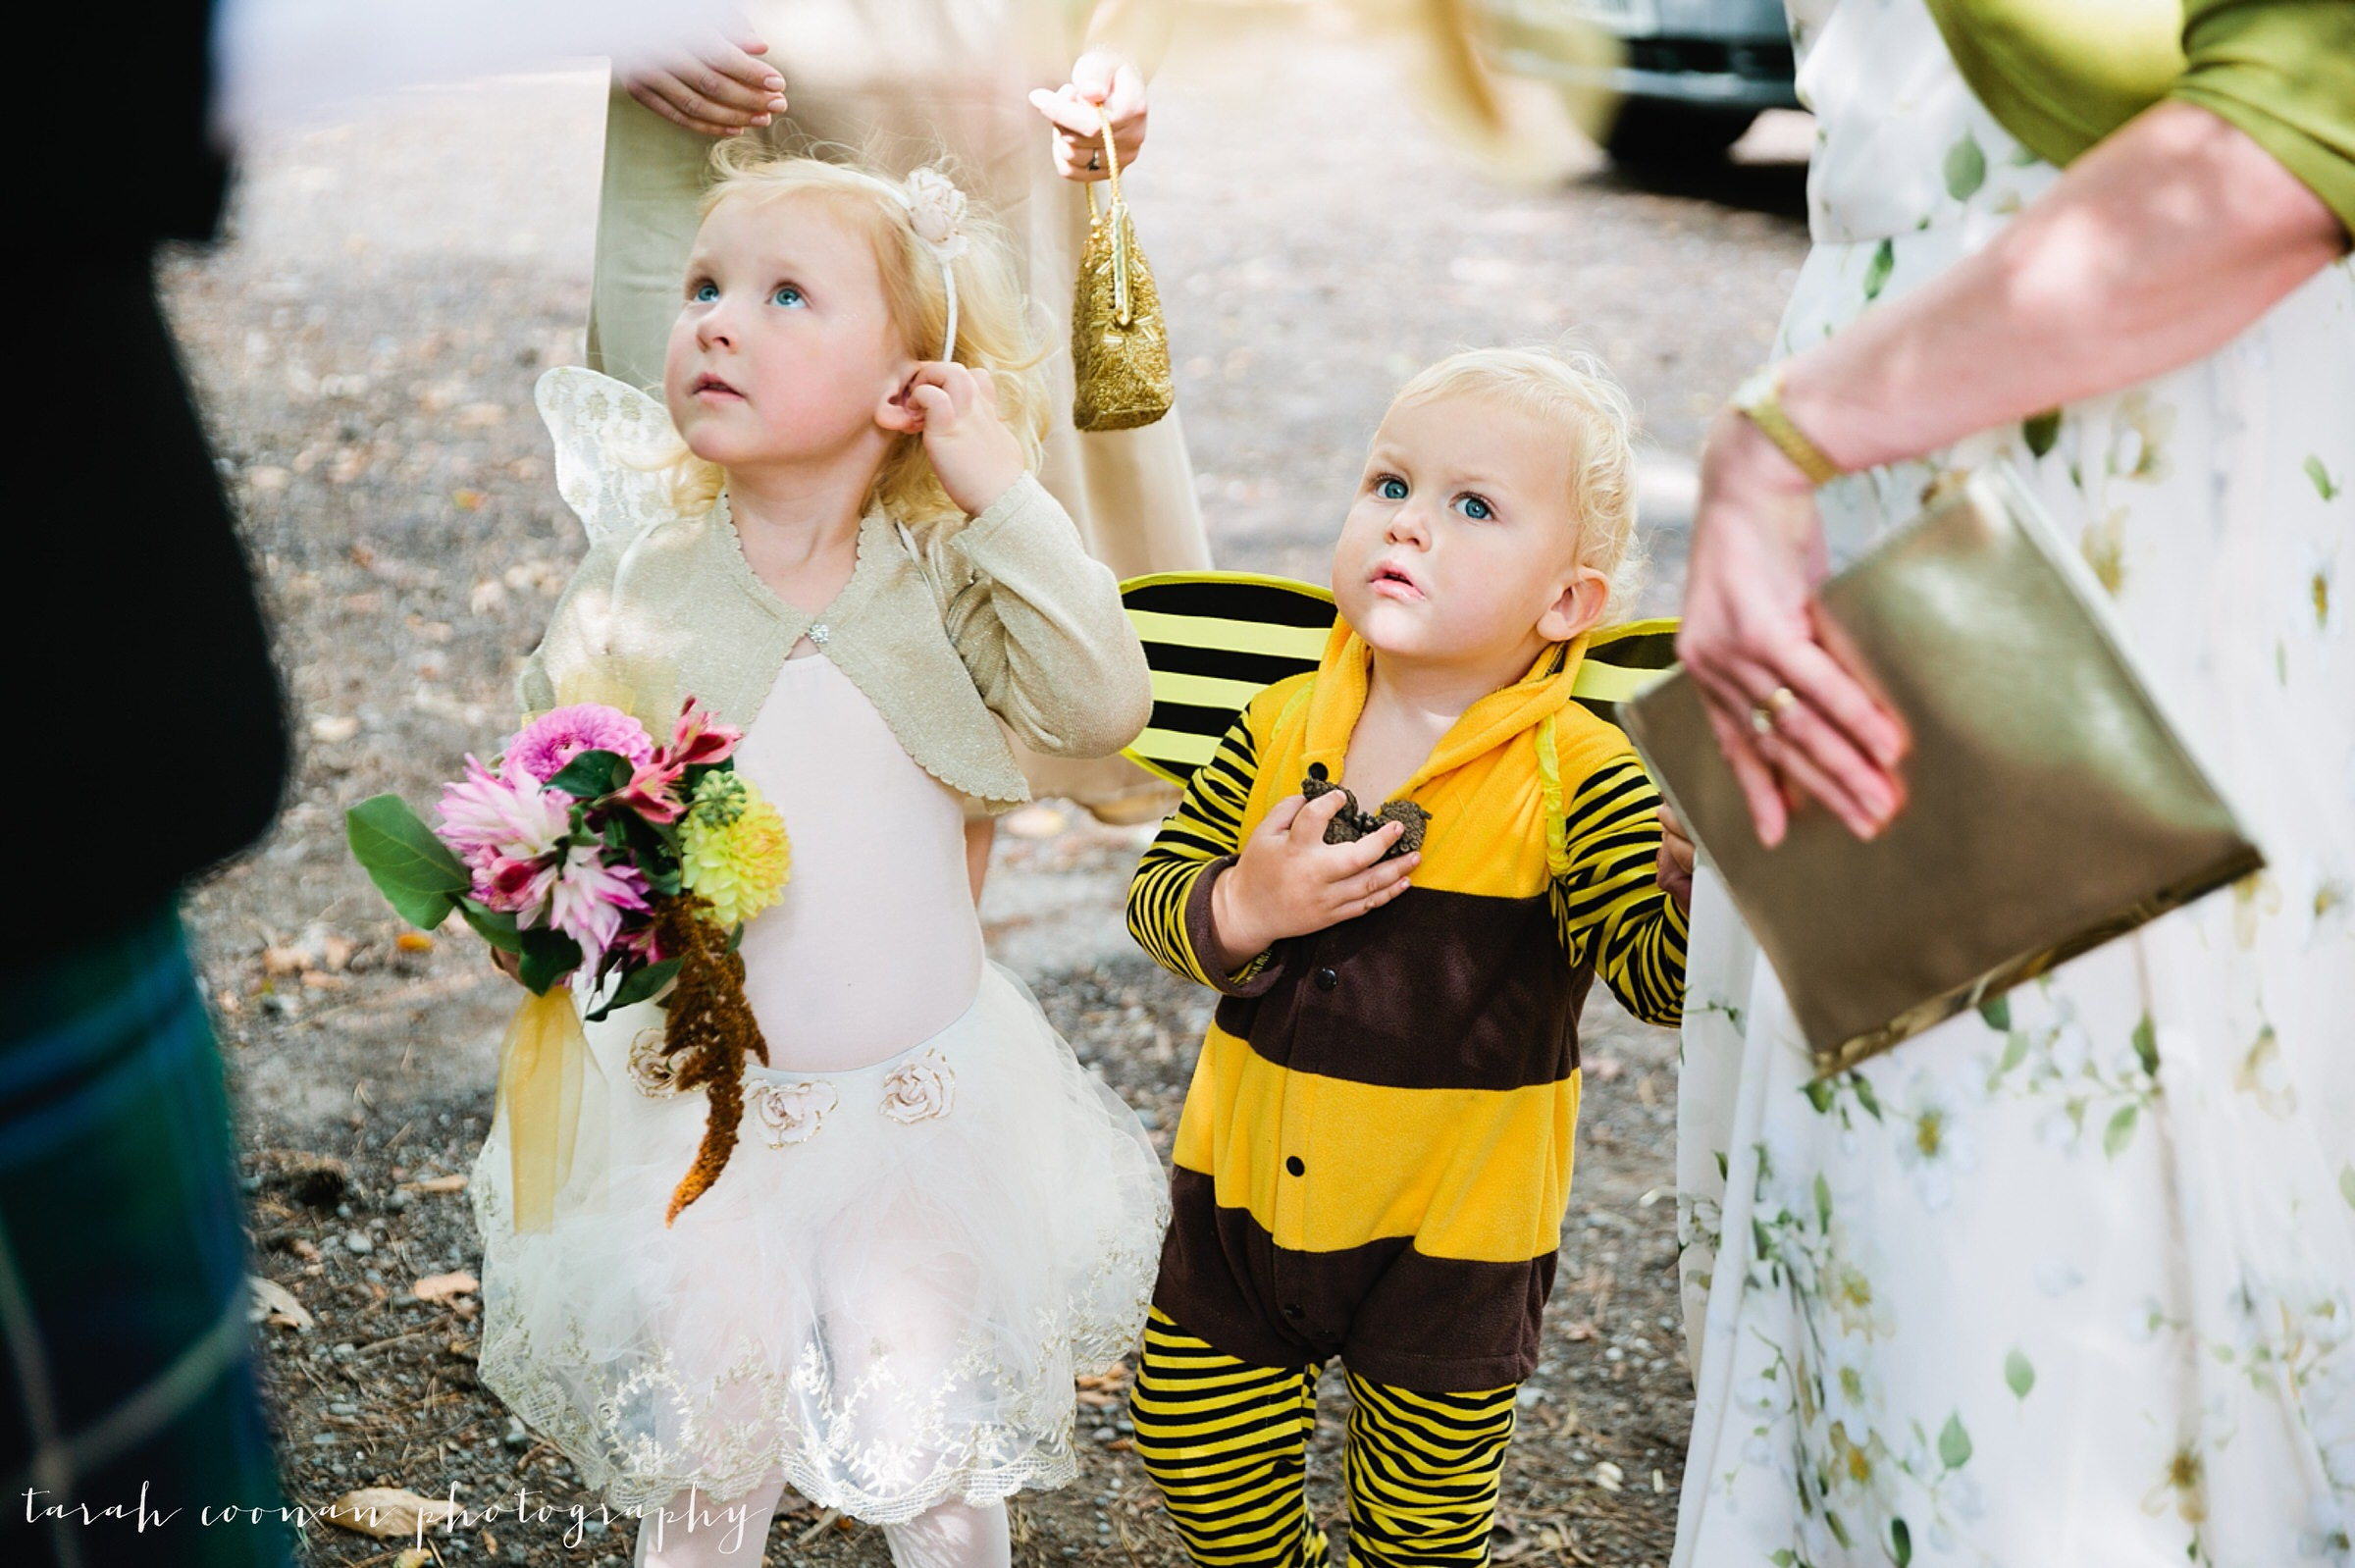 bumble bee wedding